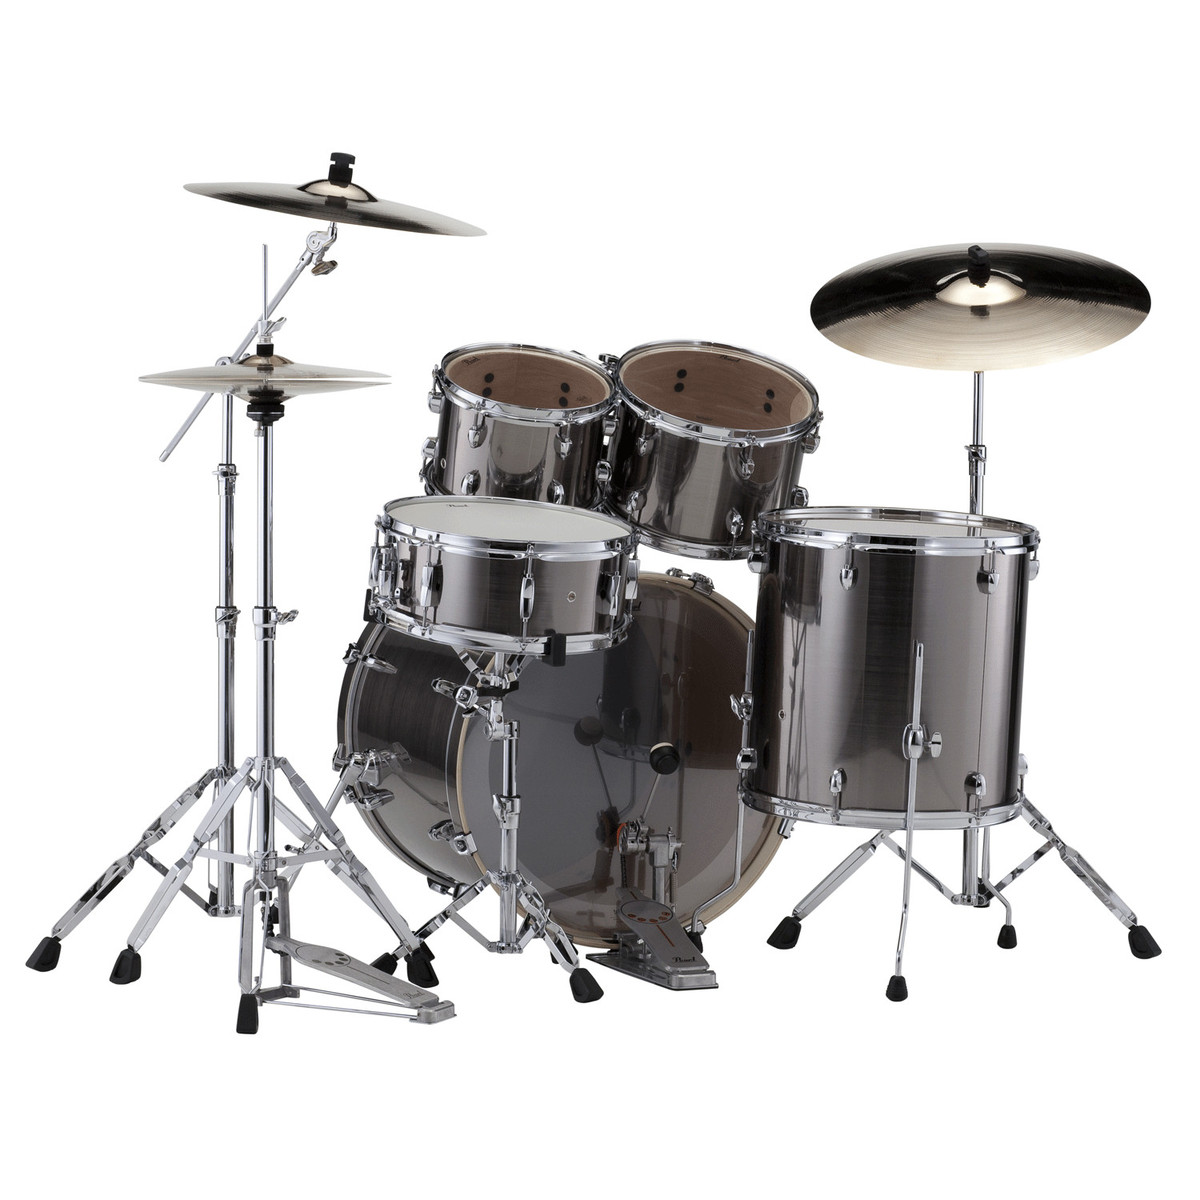 asian singles in drums Drums & percussion browse amazoncouk's range of drums and percussion and take your drumming to the next level shop our range of drum sets, cymbals, bass drums, toms, snares, cajons, percussion, and must have accessories including sticks, bags, stands and more.